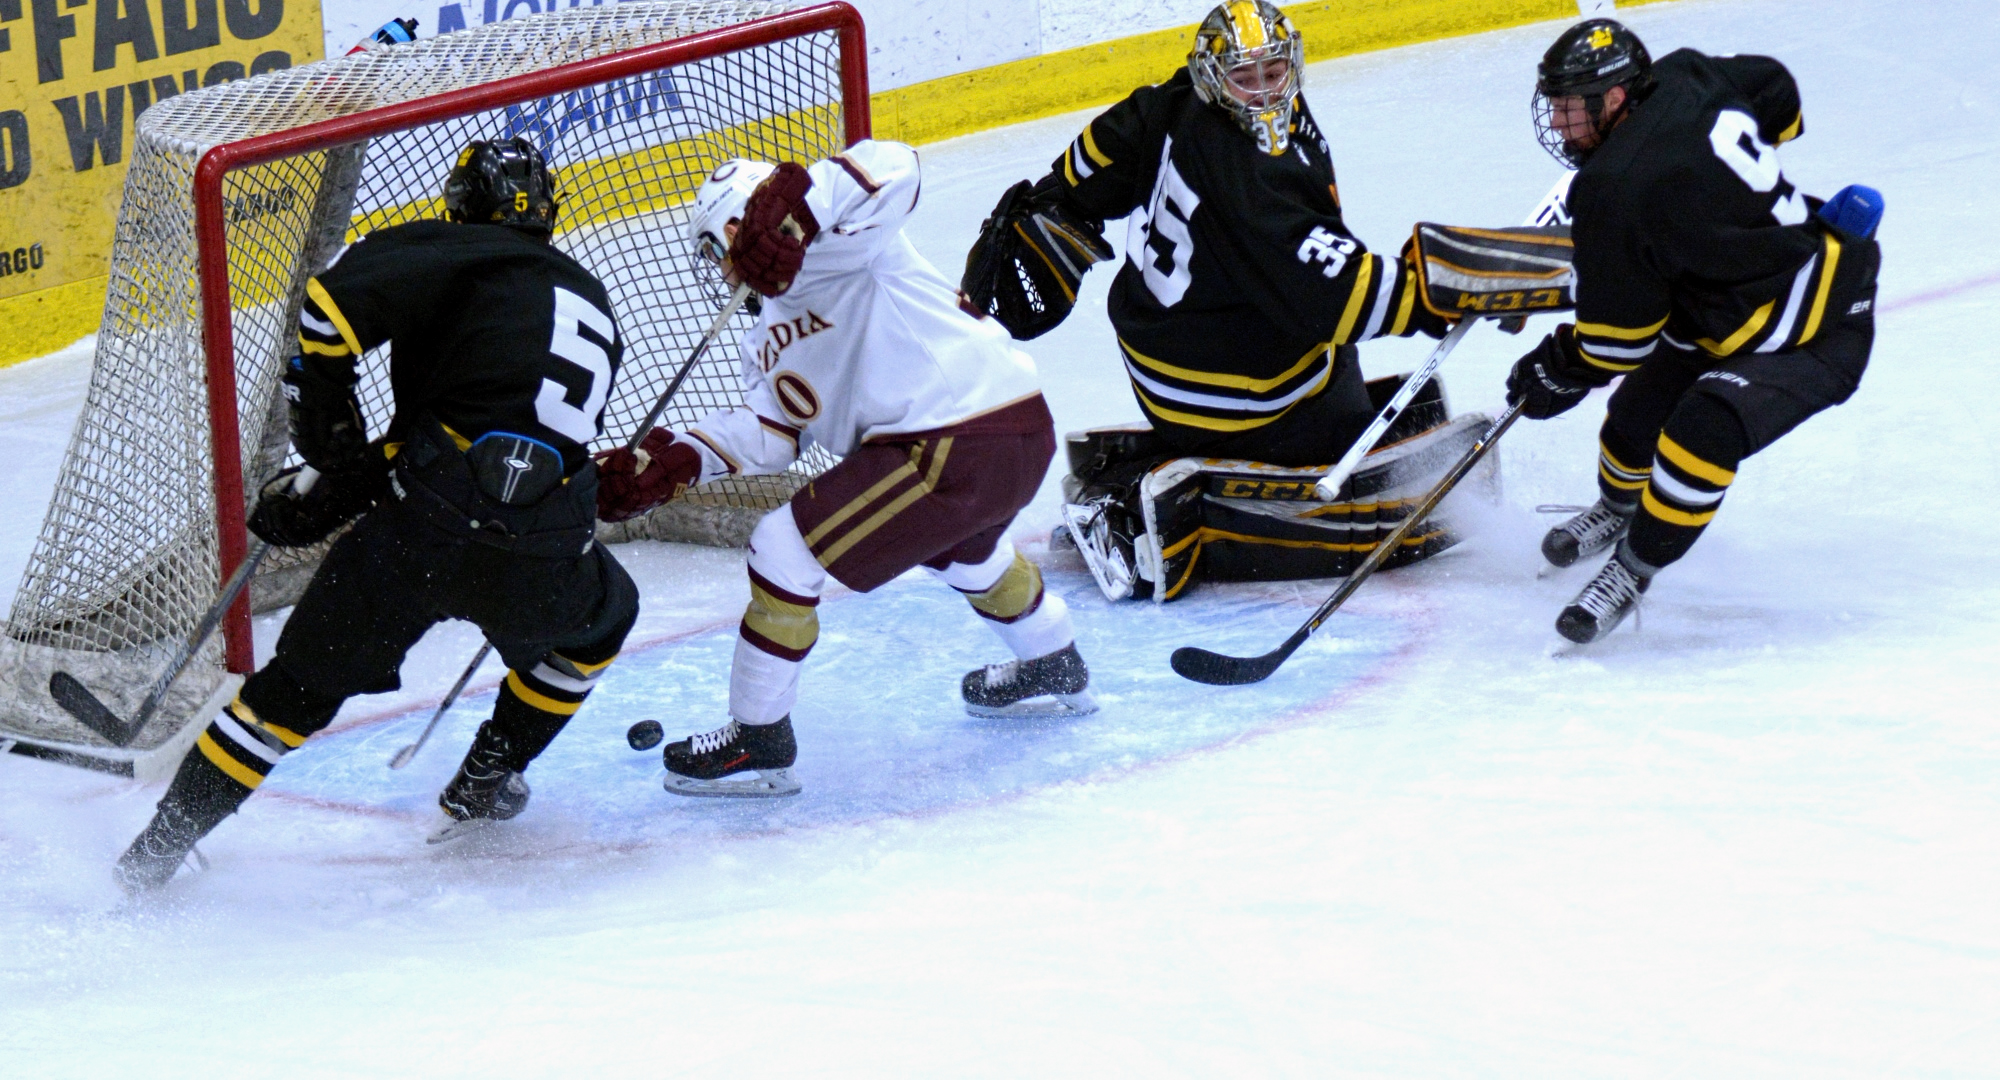 Senior Jeremy Johnson has the puck carom off his skate and into the net for the game-winning goal in the Cobbers' series opener with Gustavus.